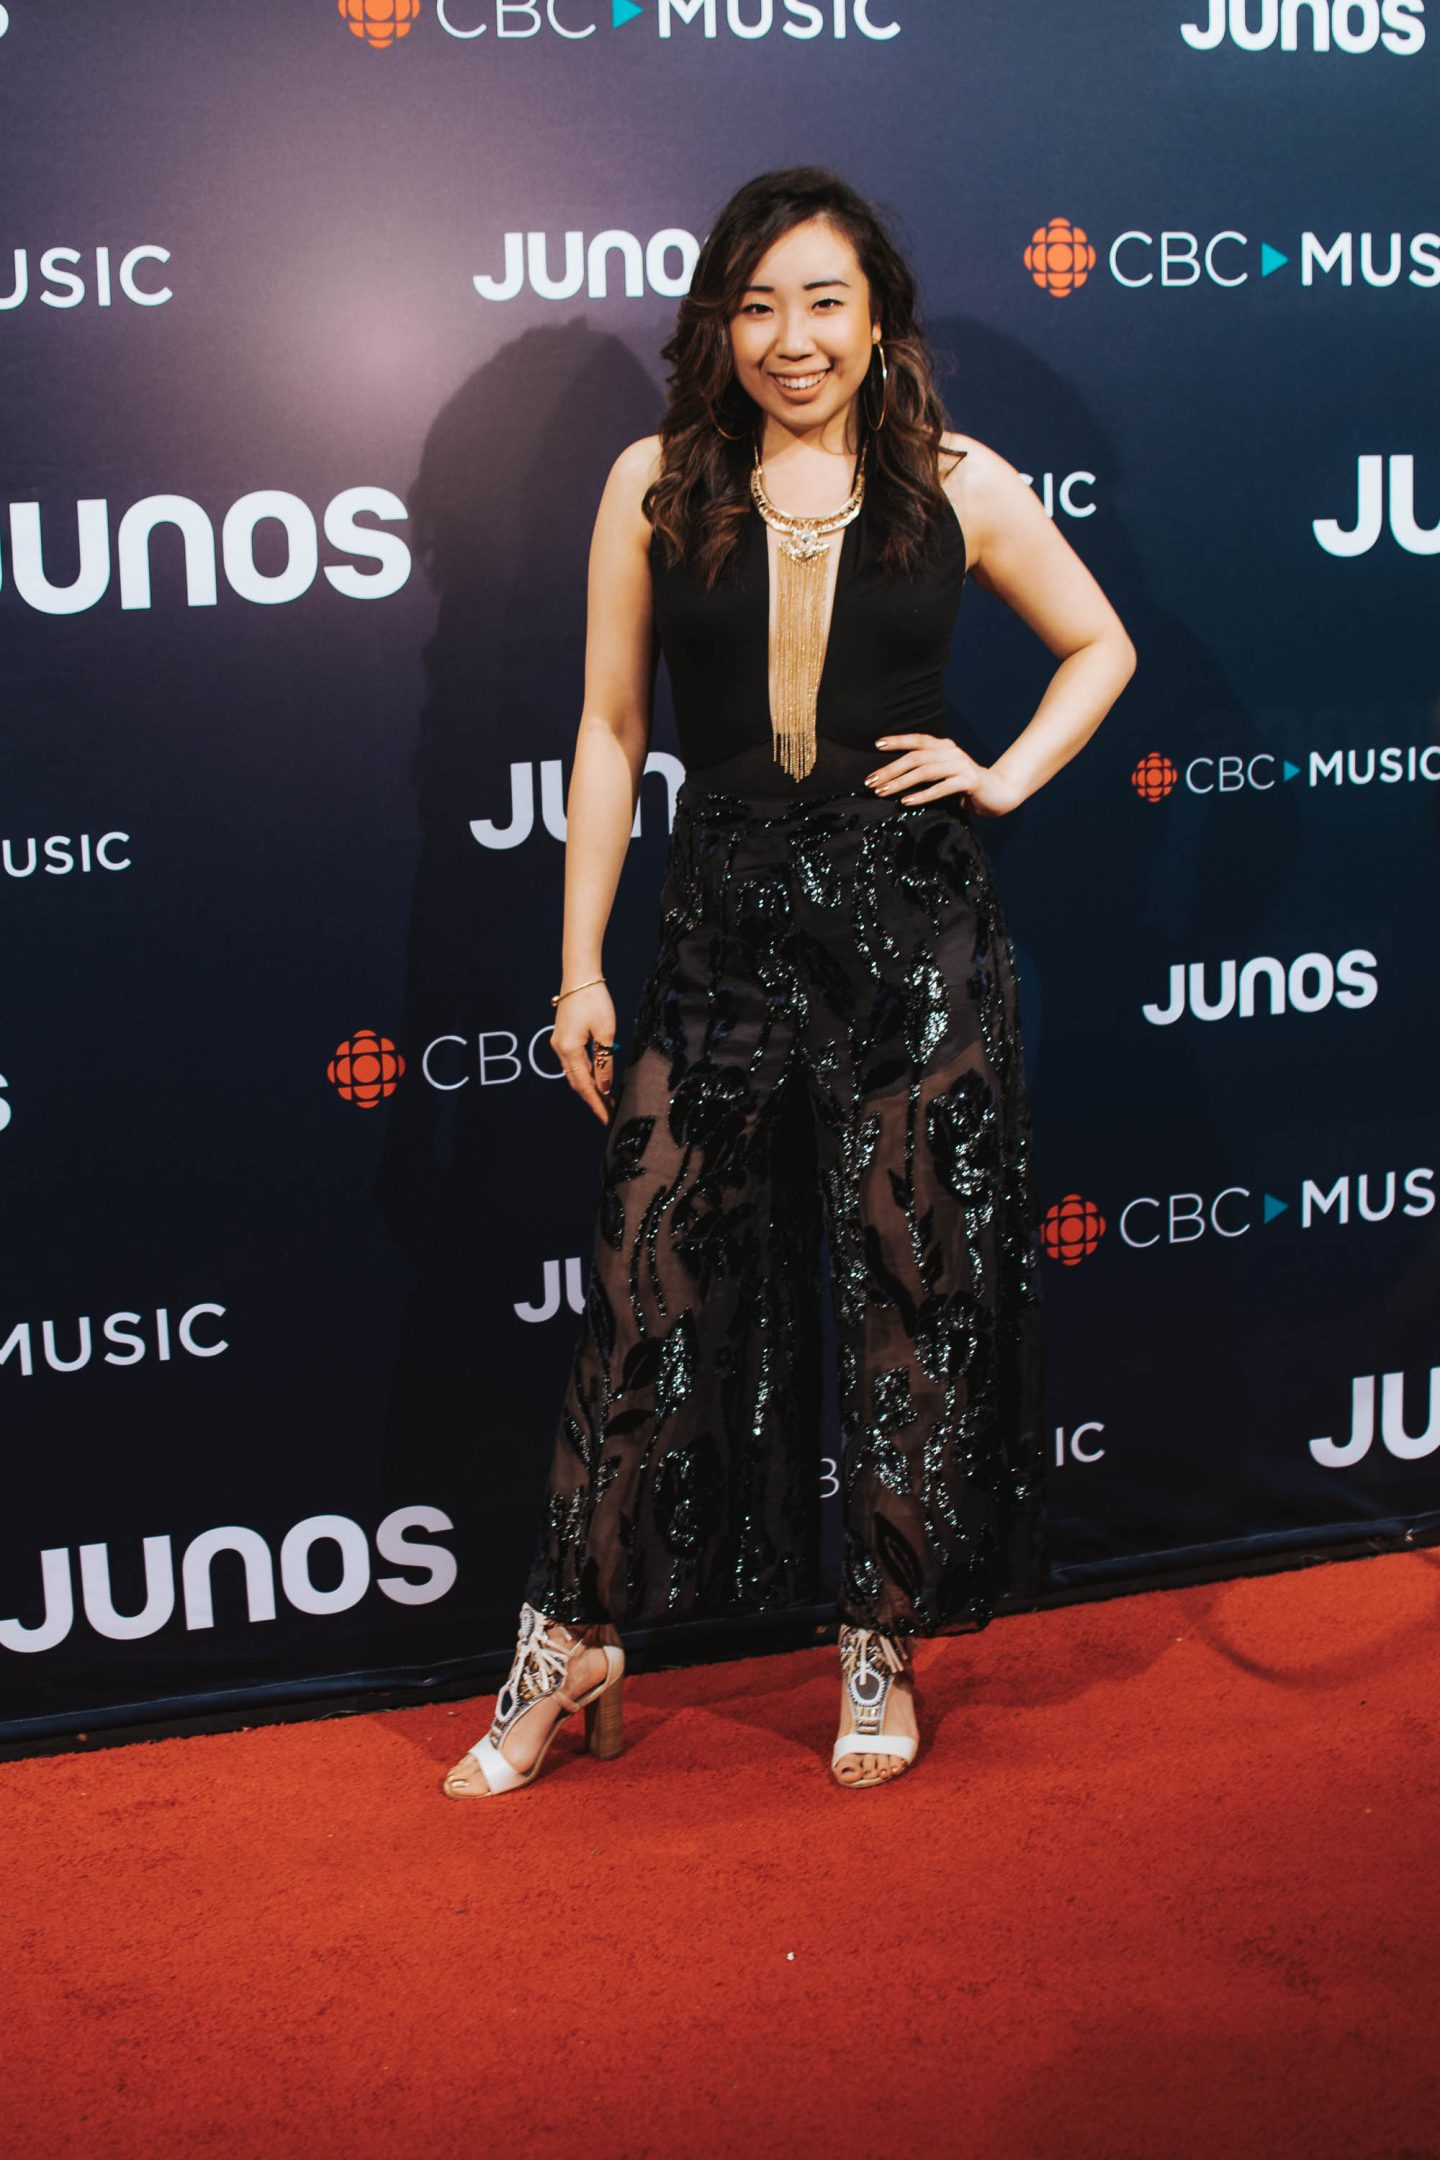 The JUNO Awards 2018 | My Official JUNOS Blogger Experience